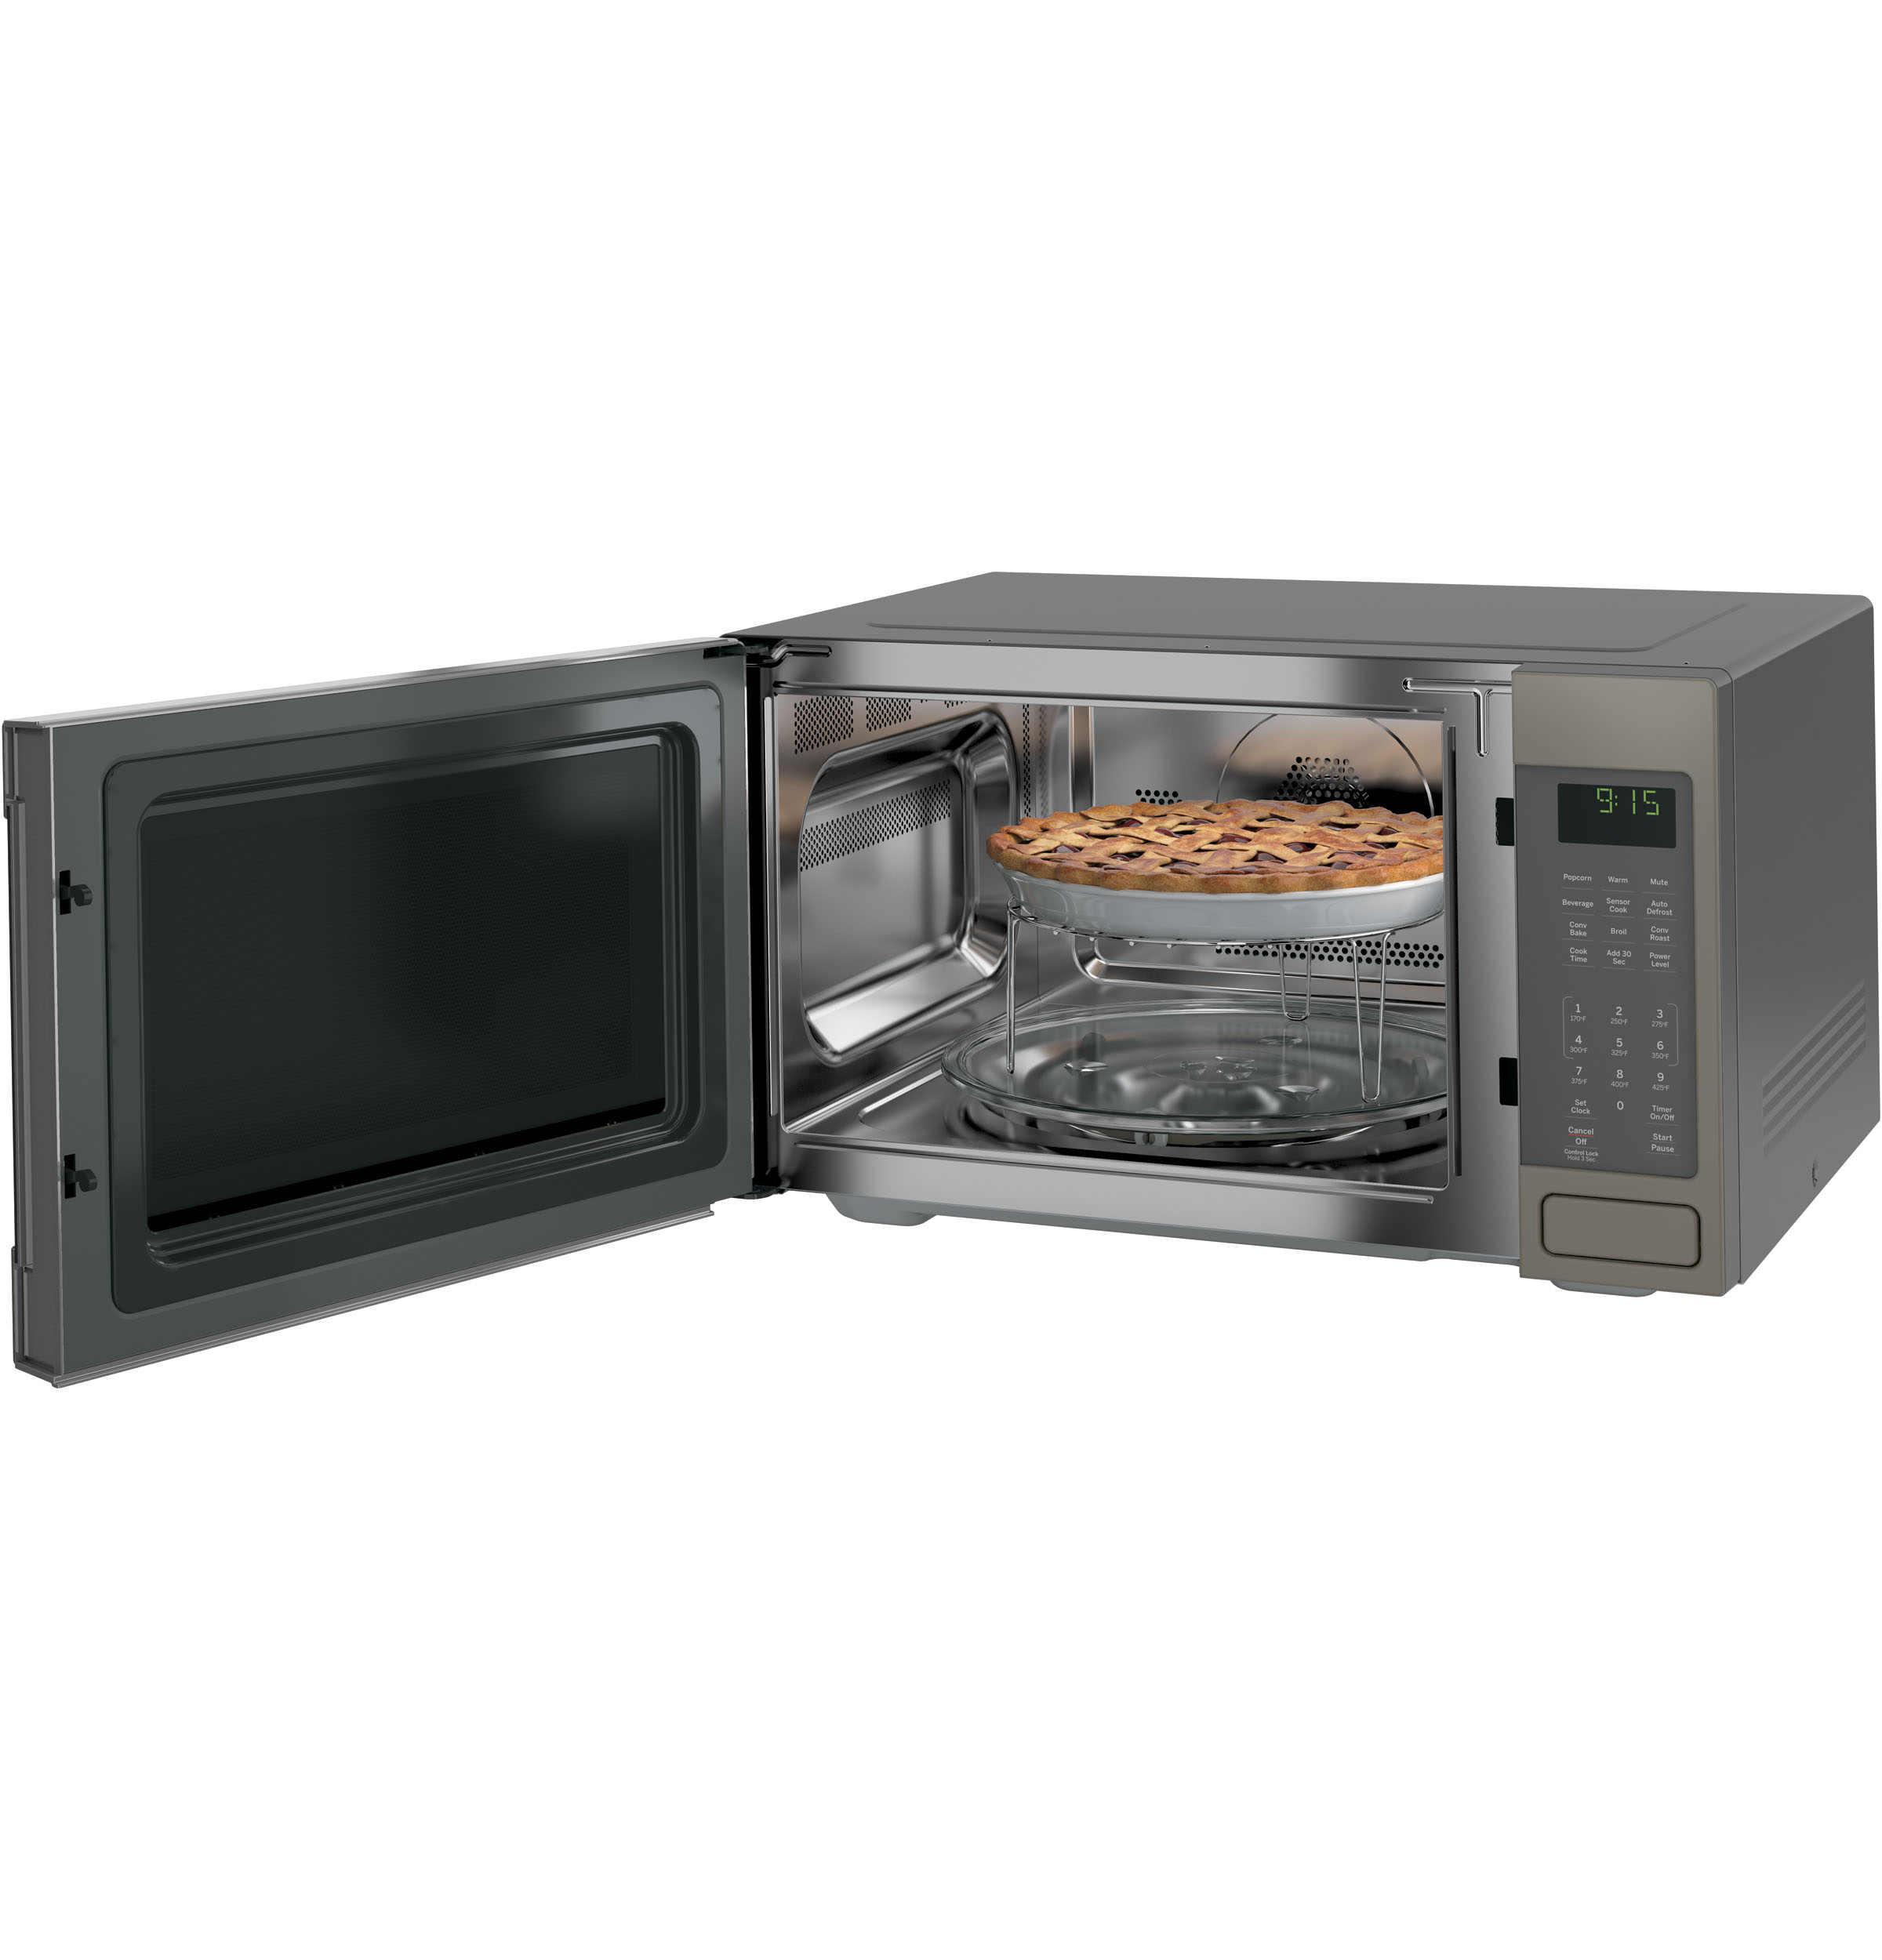 Model: PEB9159EJES | GE Profile™ Series 1.5 Cu. Ft. Countertop Convection/Microwave Oven